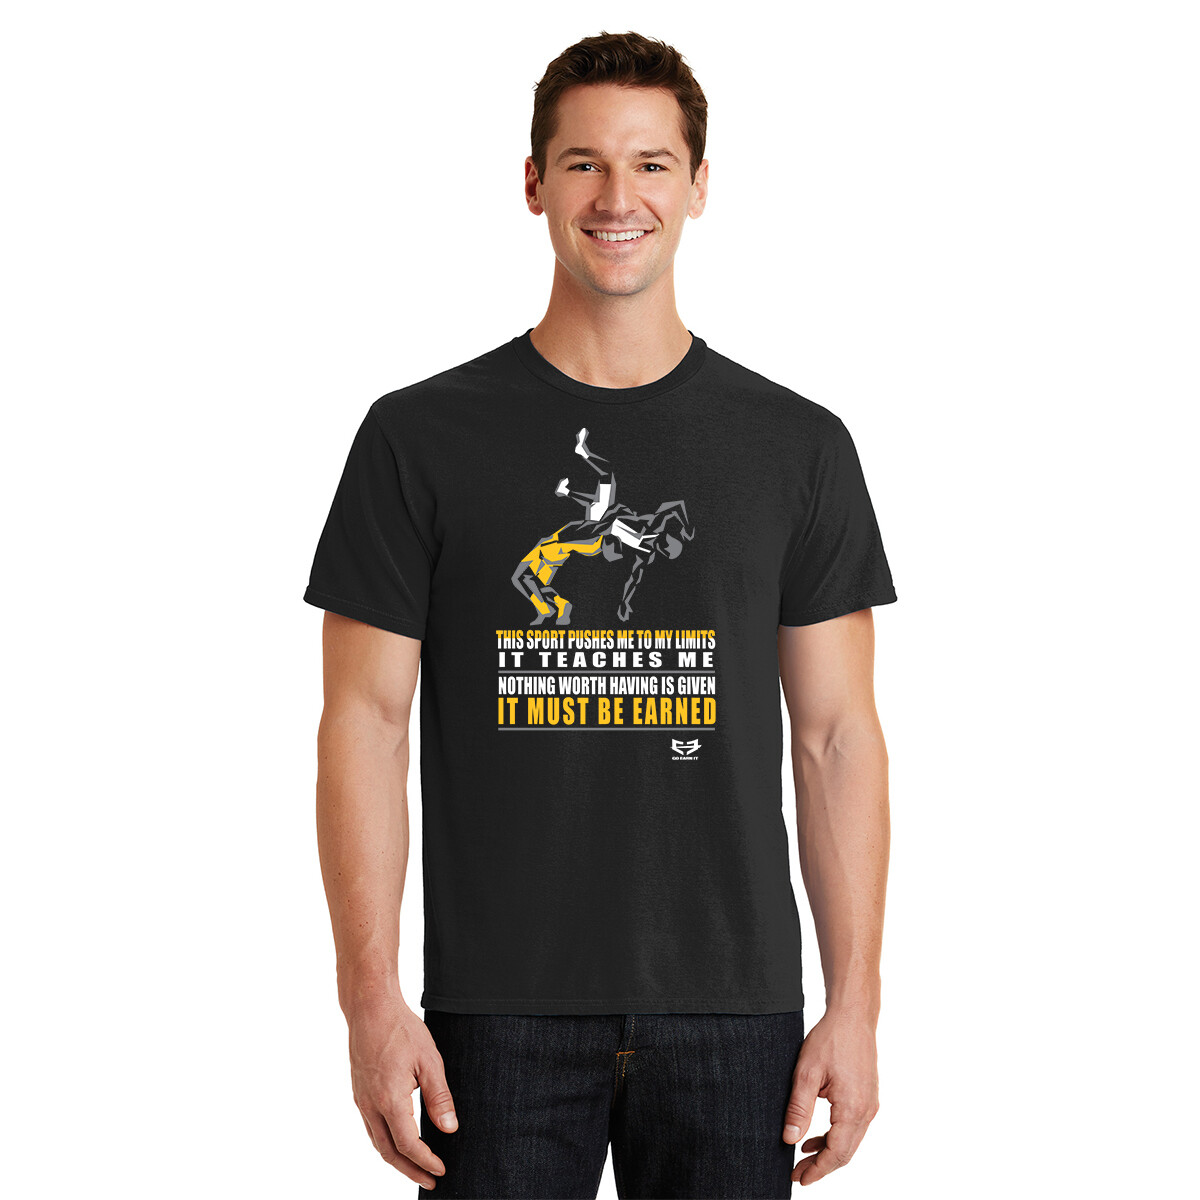 IT MUST BE EARNED GRAPHIC TEE